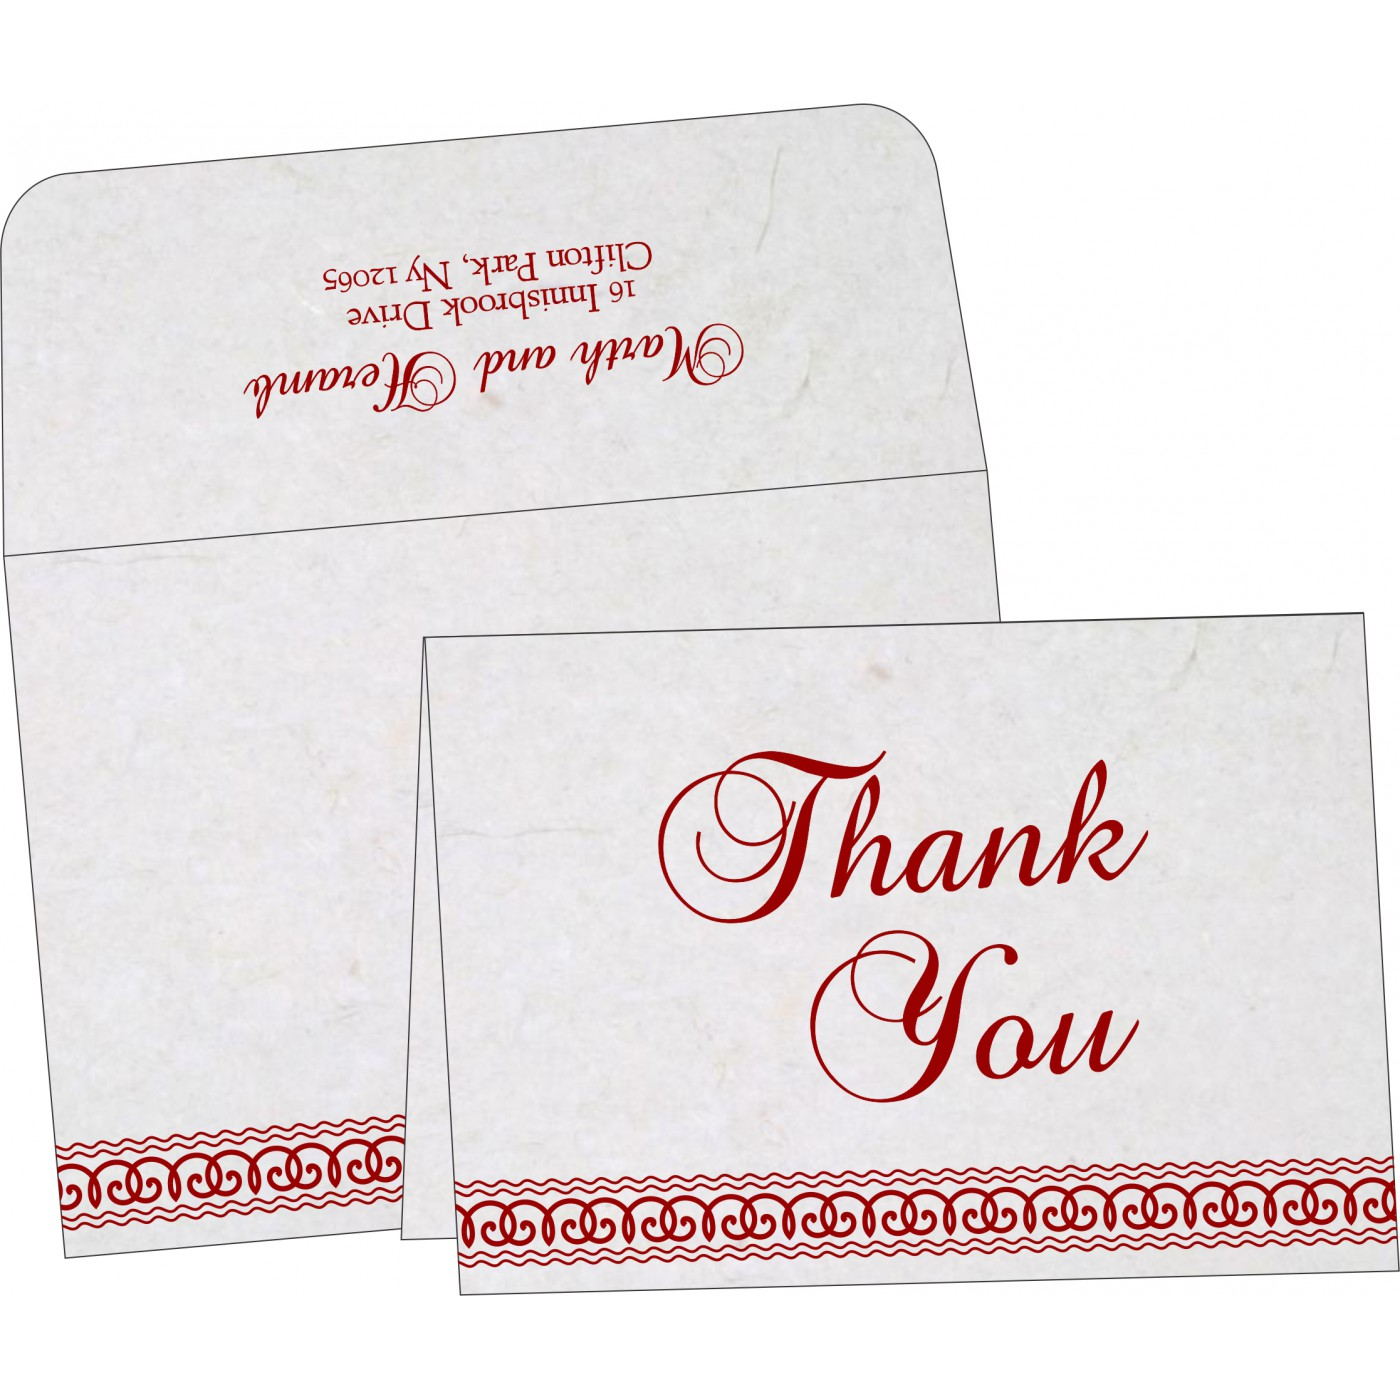 Thank You Cards - TYC-5002C